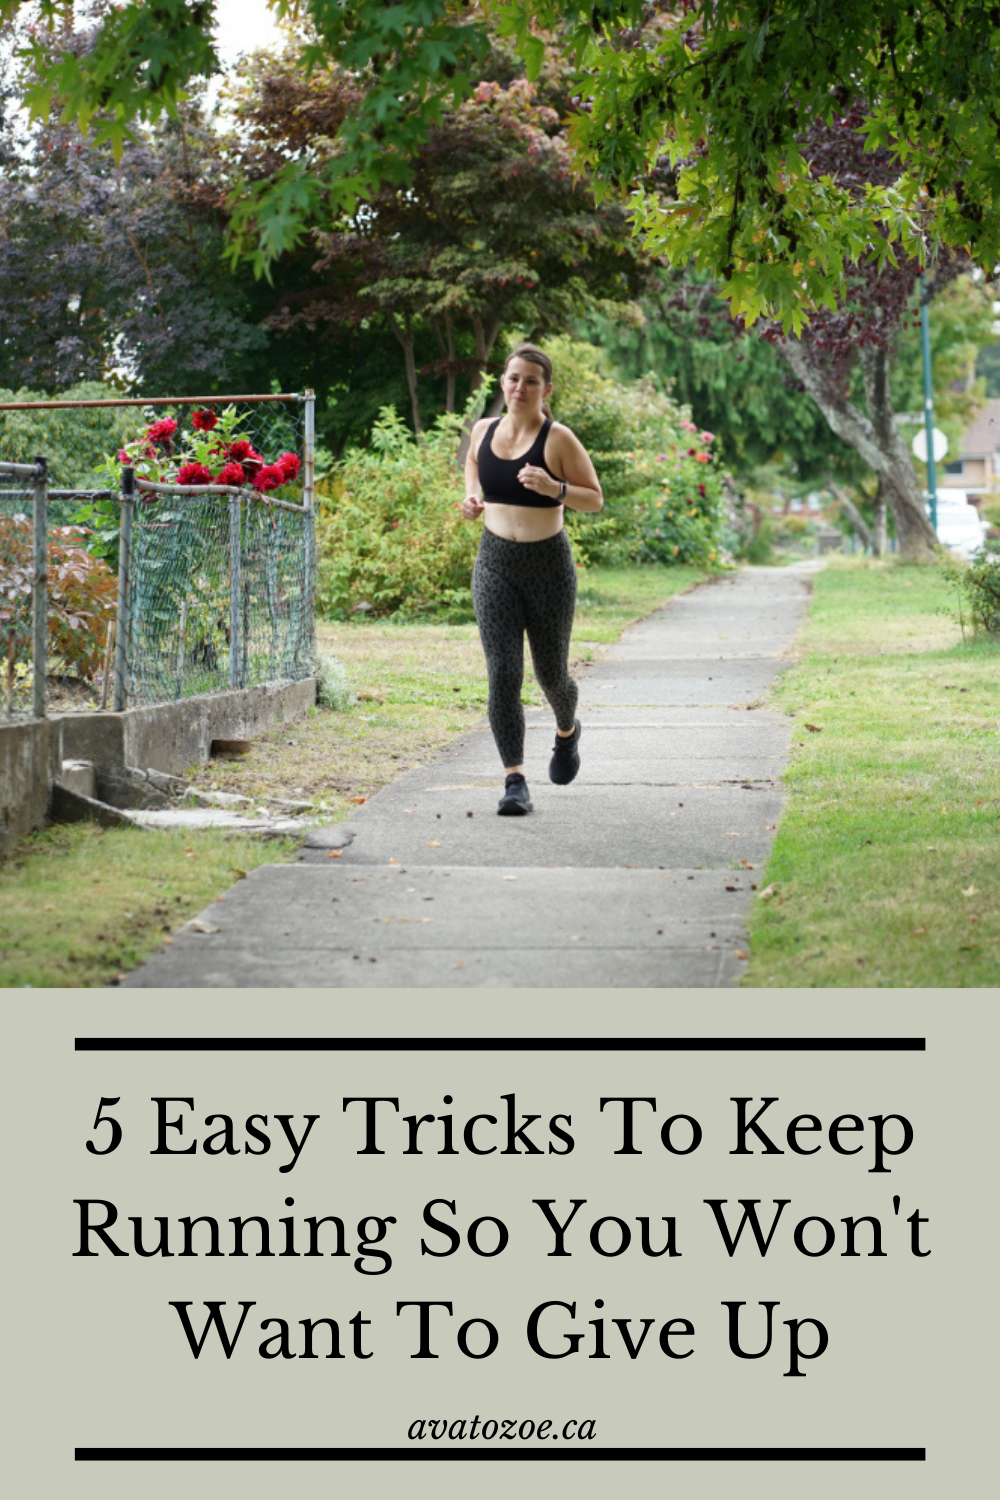 5 Easy Tricks To Keep Running So You Won't Want To Give Up